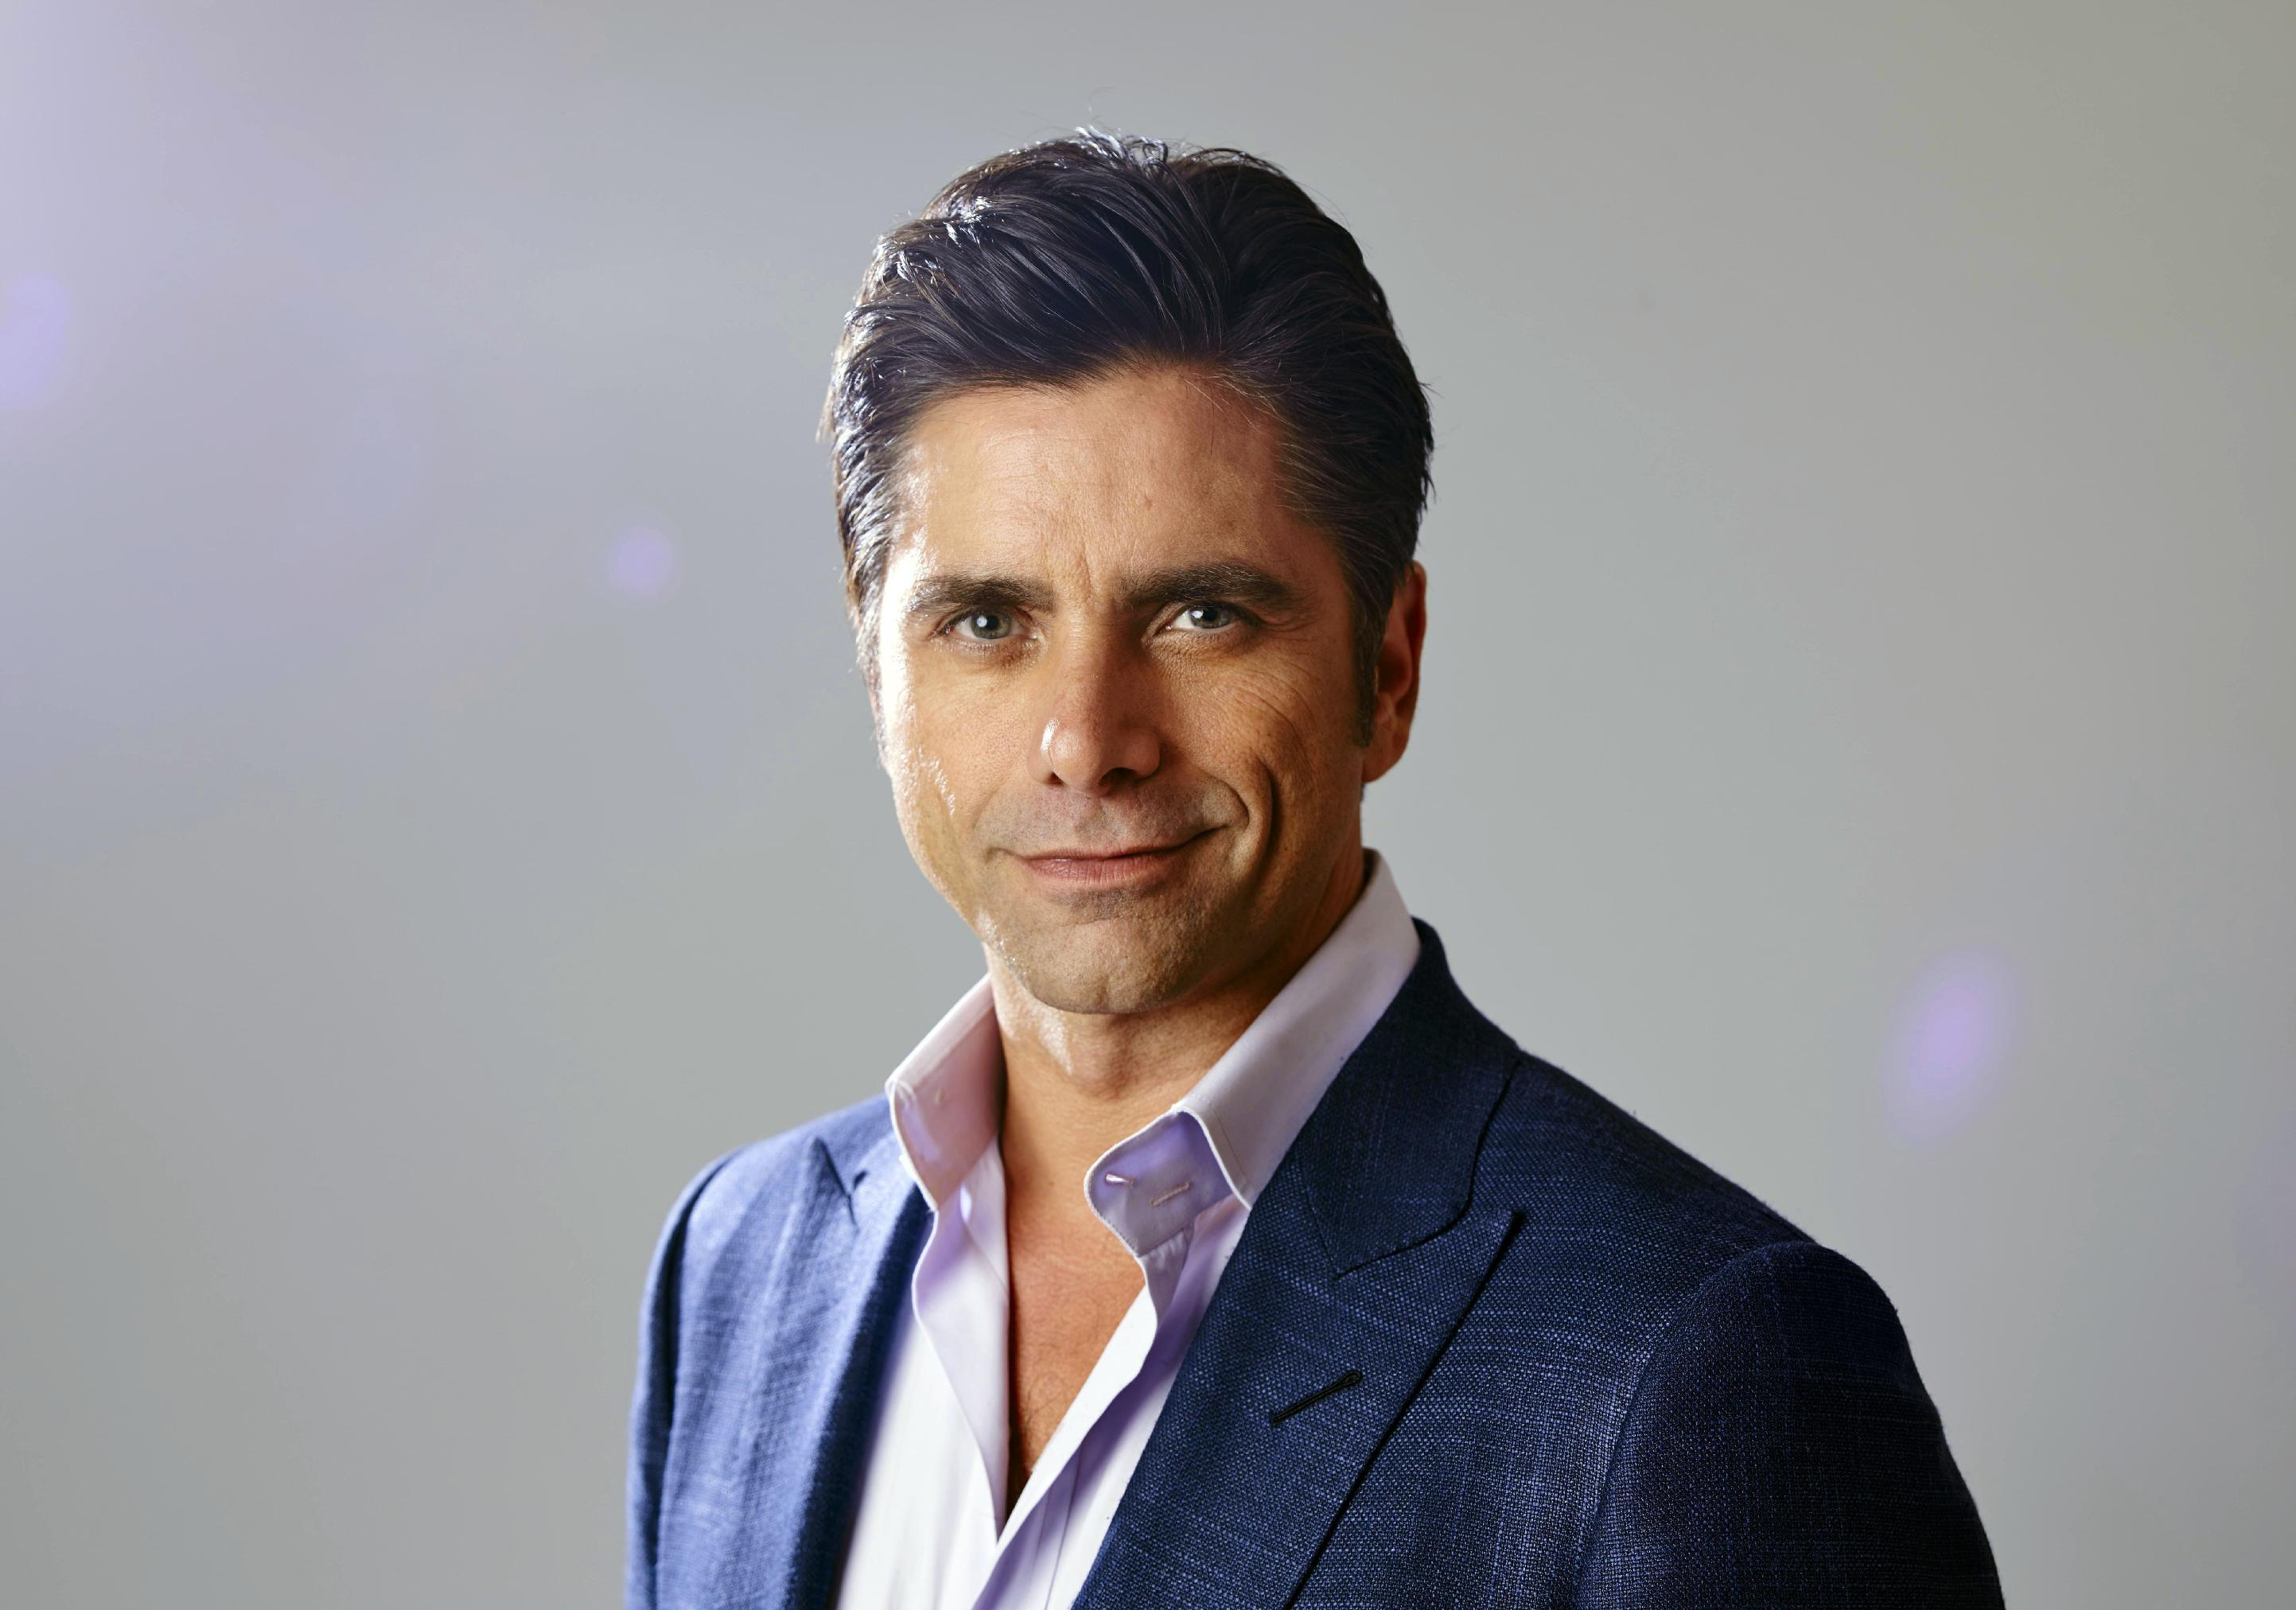 John Stamos pleads no contest to driving under the influence